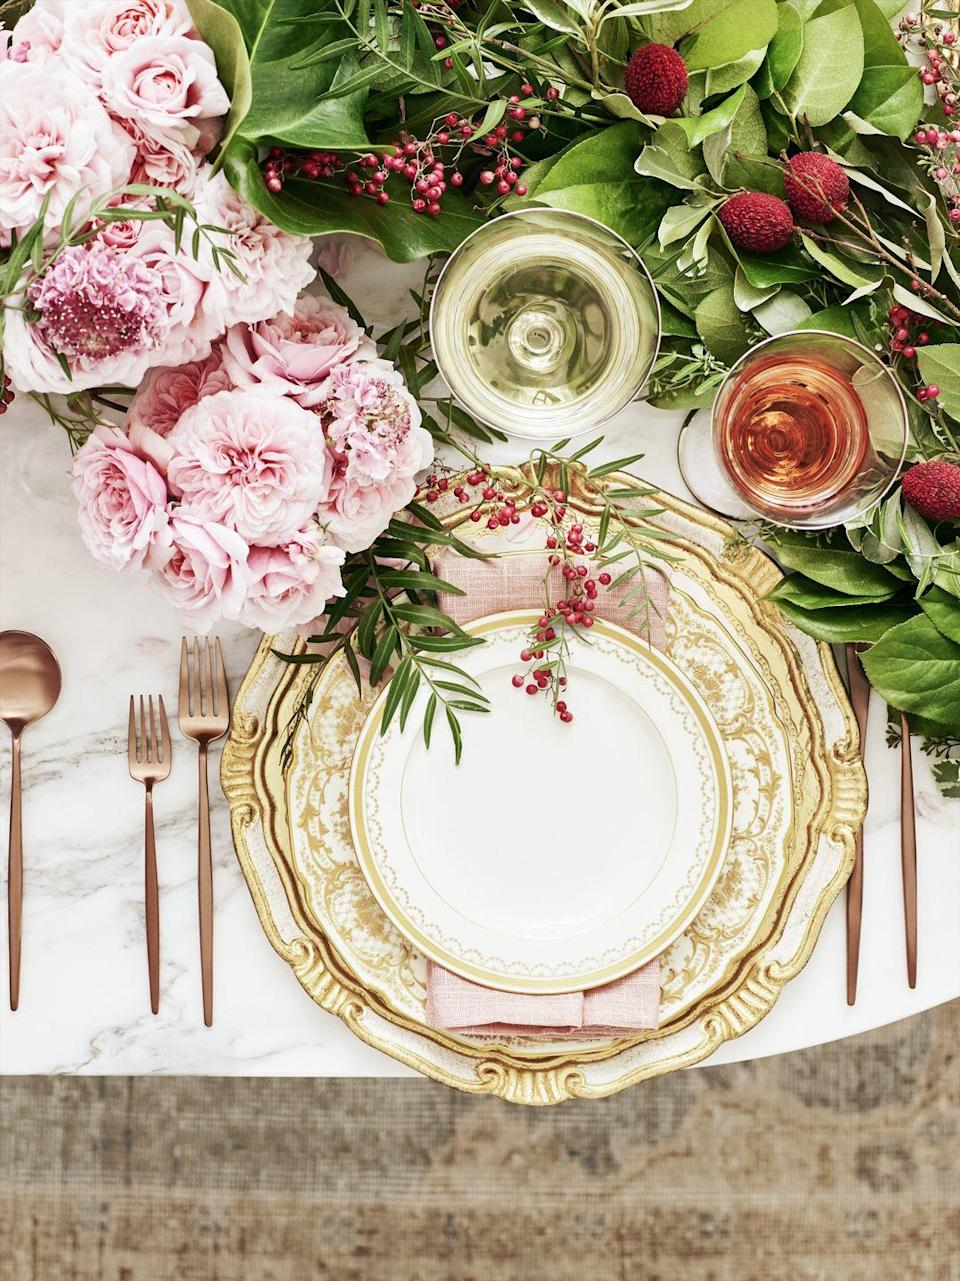 """<p>Break out the fine china, or put one gilded salad plate atop an everyday set to make each place setting feel special. A runner of greenery and blooms is a low-profile floral option that's easy for guests to chat over.</p><p><span class=""""redactor-invisible-space""""><span class=""""redactor-invisible-space""""><a class=""""link rapid-noclick-resp"""" href=""""https://go.redirectingat.com?id=74968X1596630&url=https%3A%2F%2Fwww.etsy.com%2Flisting%2F470626436%2Ffreshly-harvested-seeded-eucalyptus&sref=https%3A%2F%2Fwww.goodhousekeeping.com%2Fholidays%2Fchristmas-ideas%2Fhow-to%2Fg2196%2Fchristmas-table-settings%2F"""" rel=""""nofollow noopener"""" target=""""_blank"""" data-ylk=""""slk:SHOP FRESH RUNNERS"""">SHOP FRESH RUNNERS</a></span></span><br></p>"""